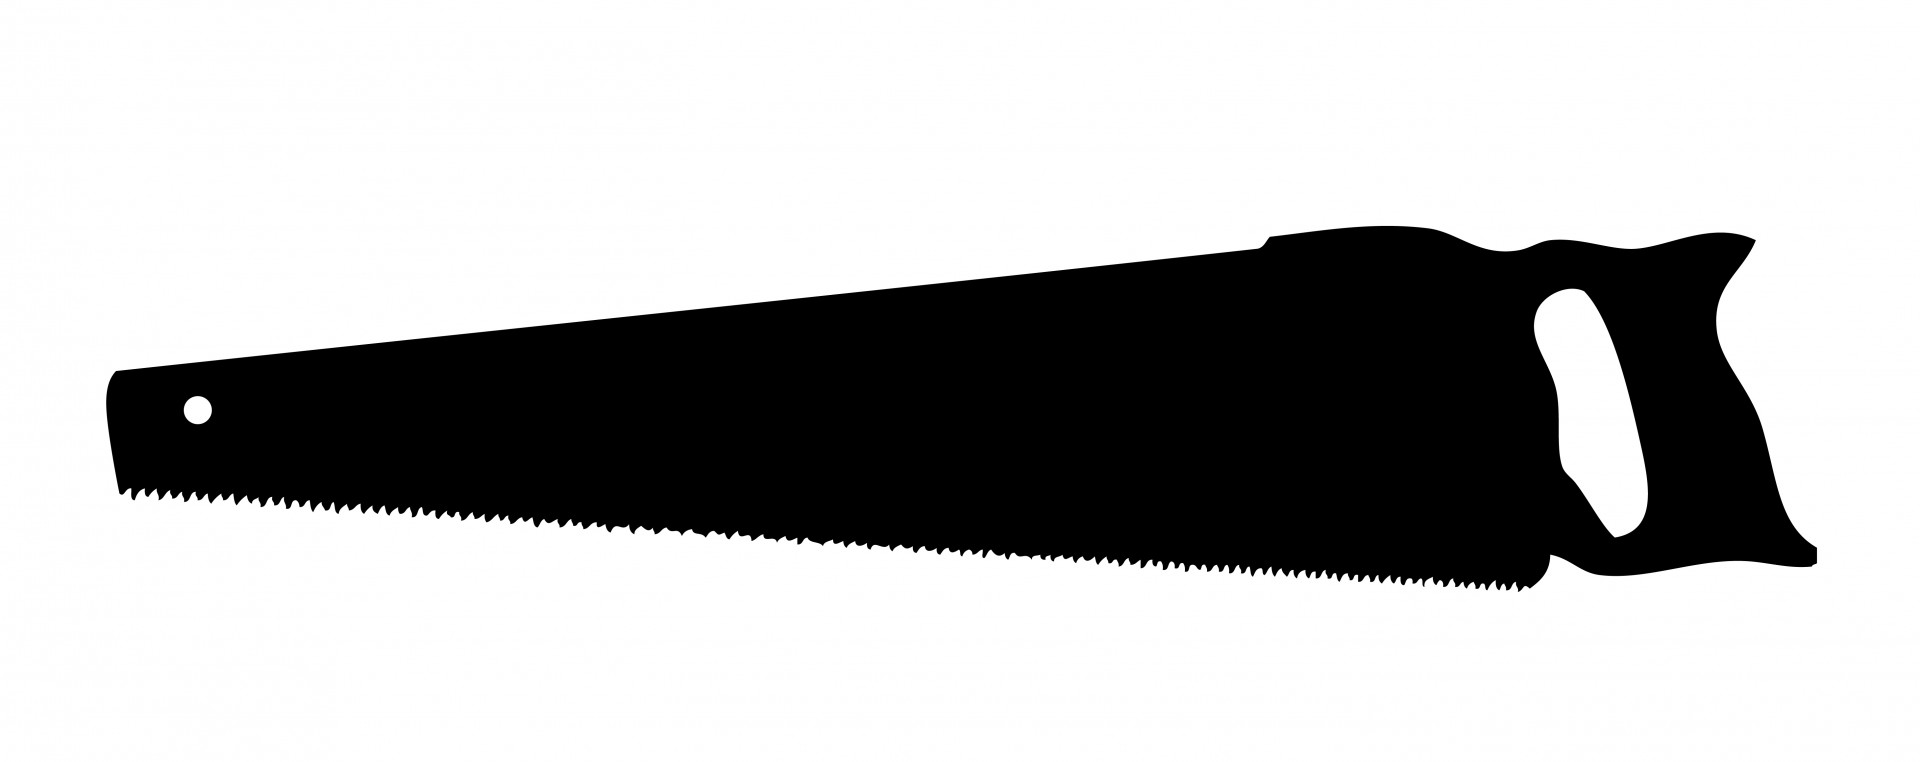 Hand Saw Clipart